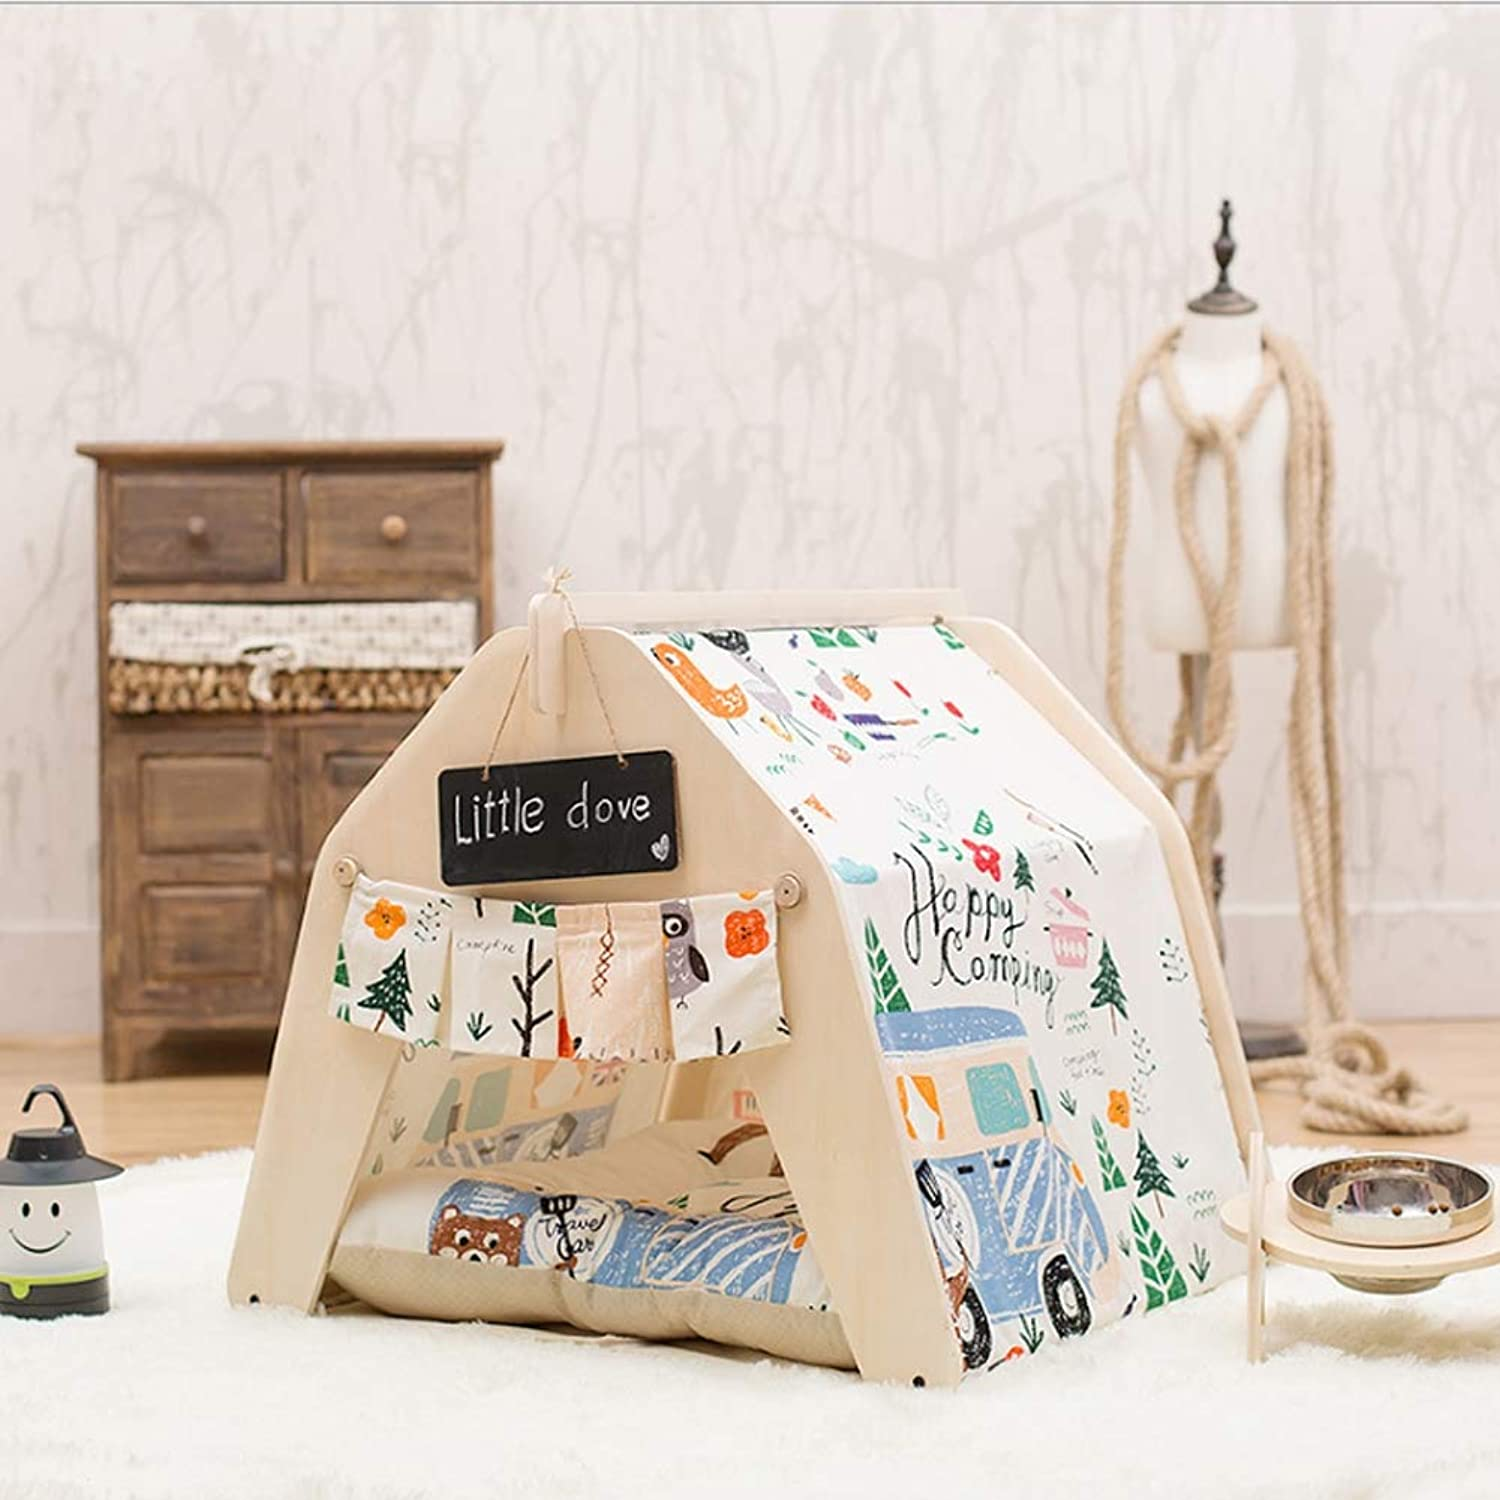 colorful Canvas Pet Tent Cat Kennel Washable Fabric Wooden Household Outdoor Supplies,colorfulCanvas(nopad),L